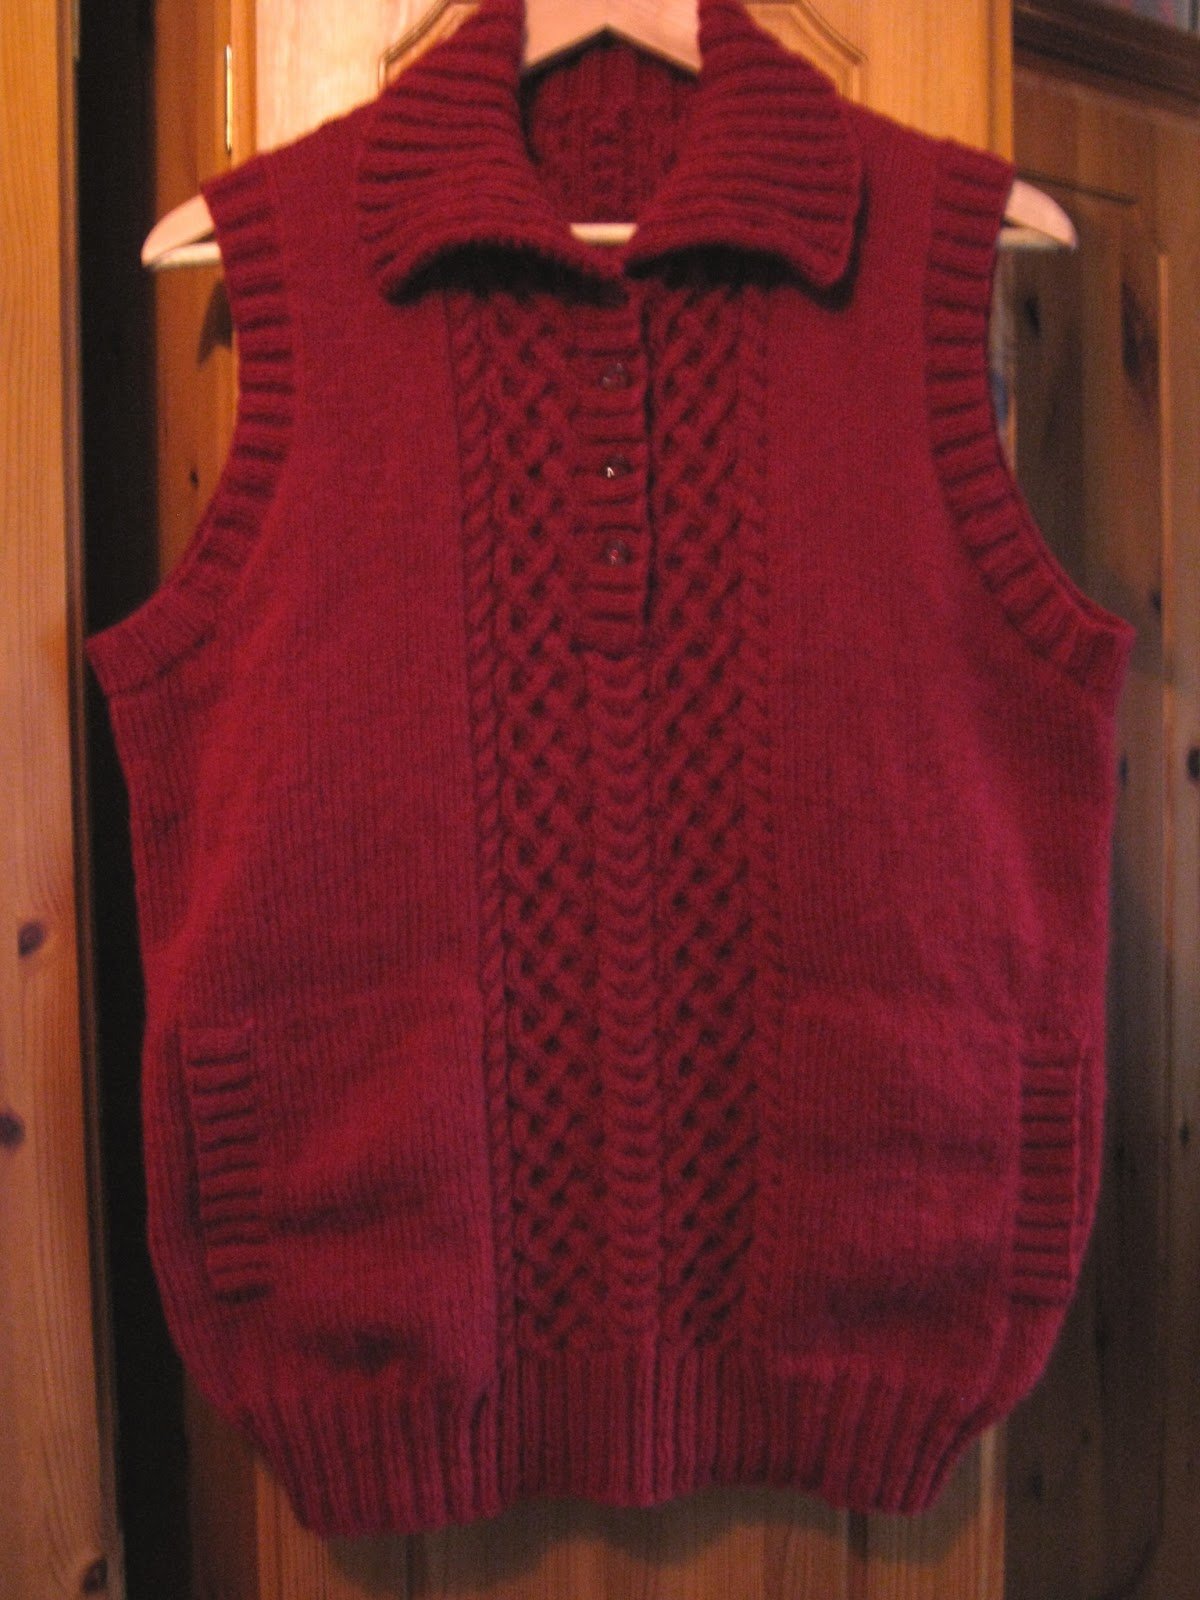 Sixties Spirit: Celtic braid sweater vest and hat